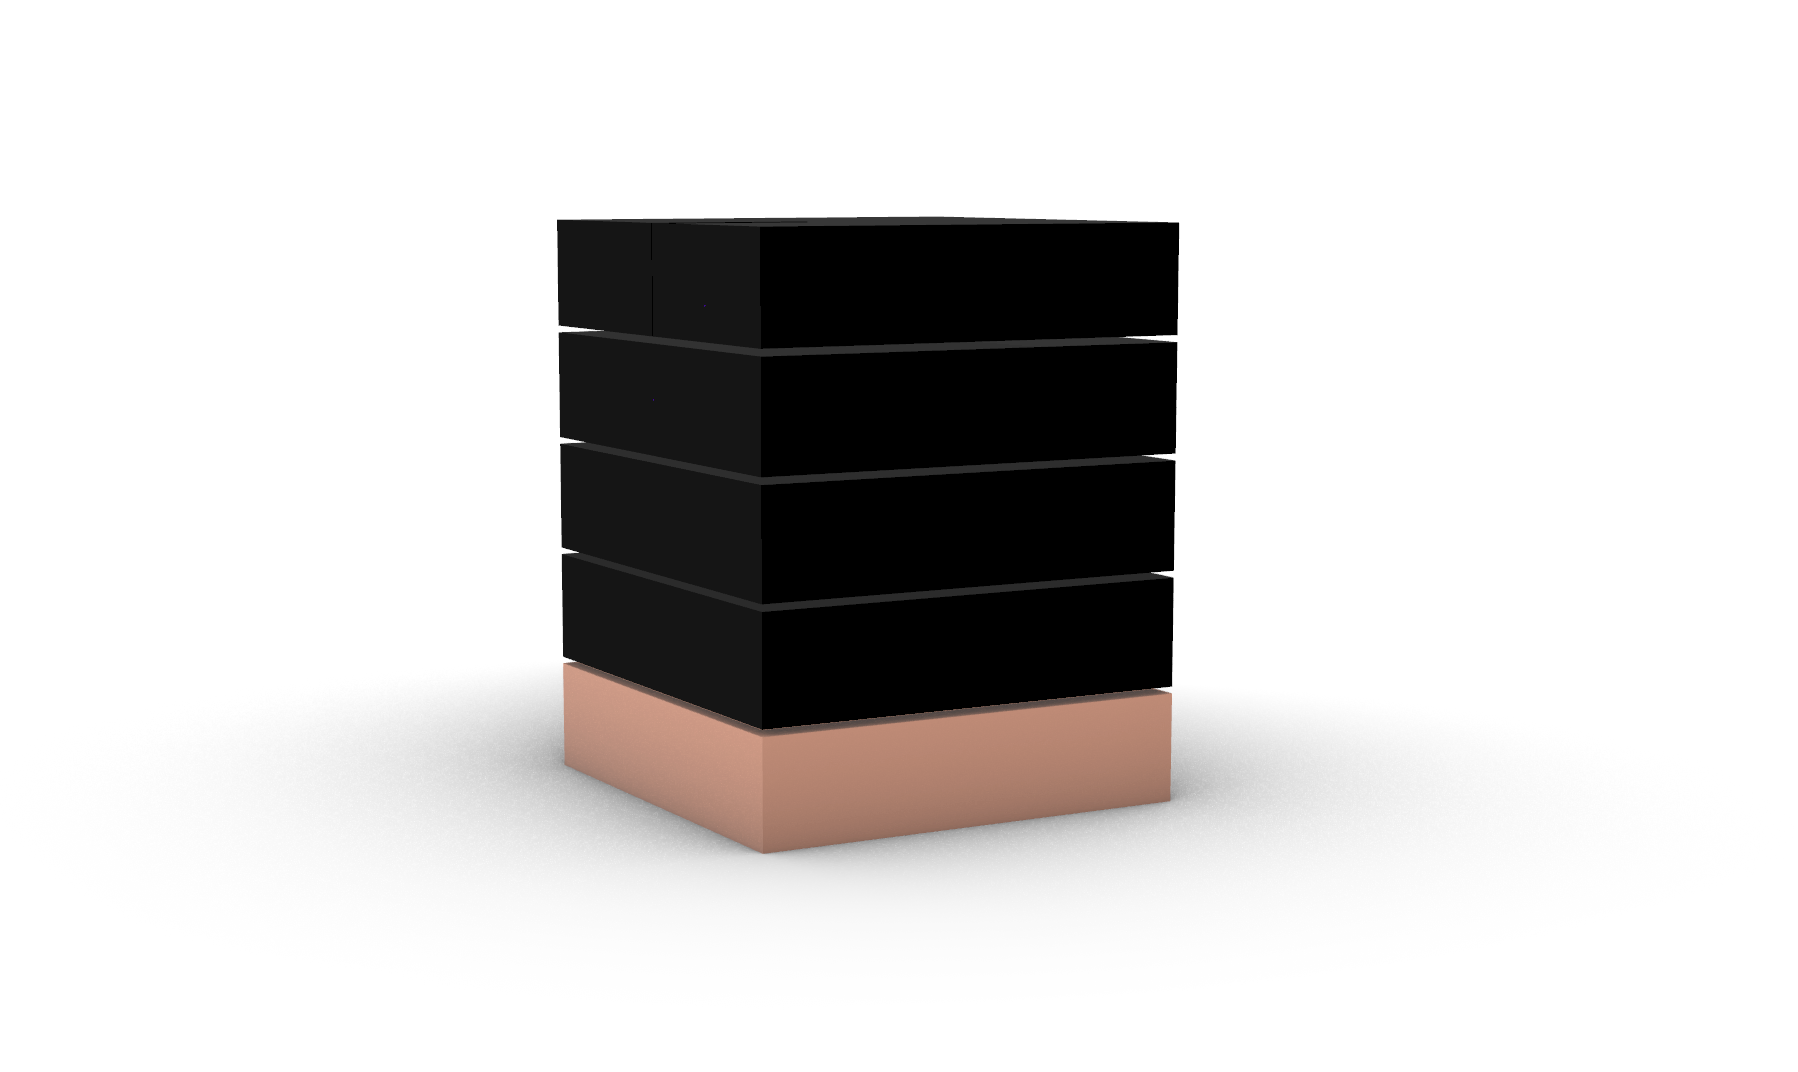 A visualisation for The Membranous Box with four black cuboids and one pink cuboid stacking together